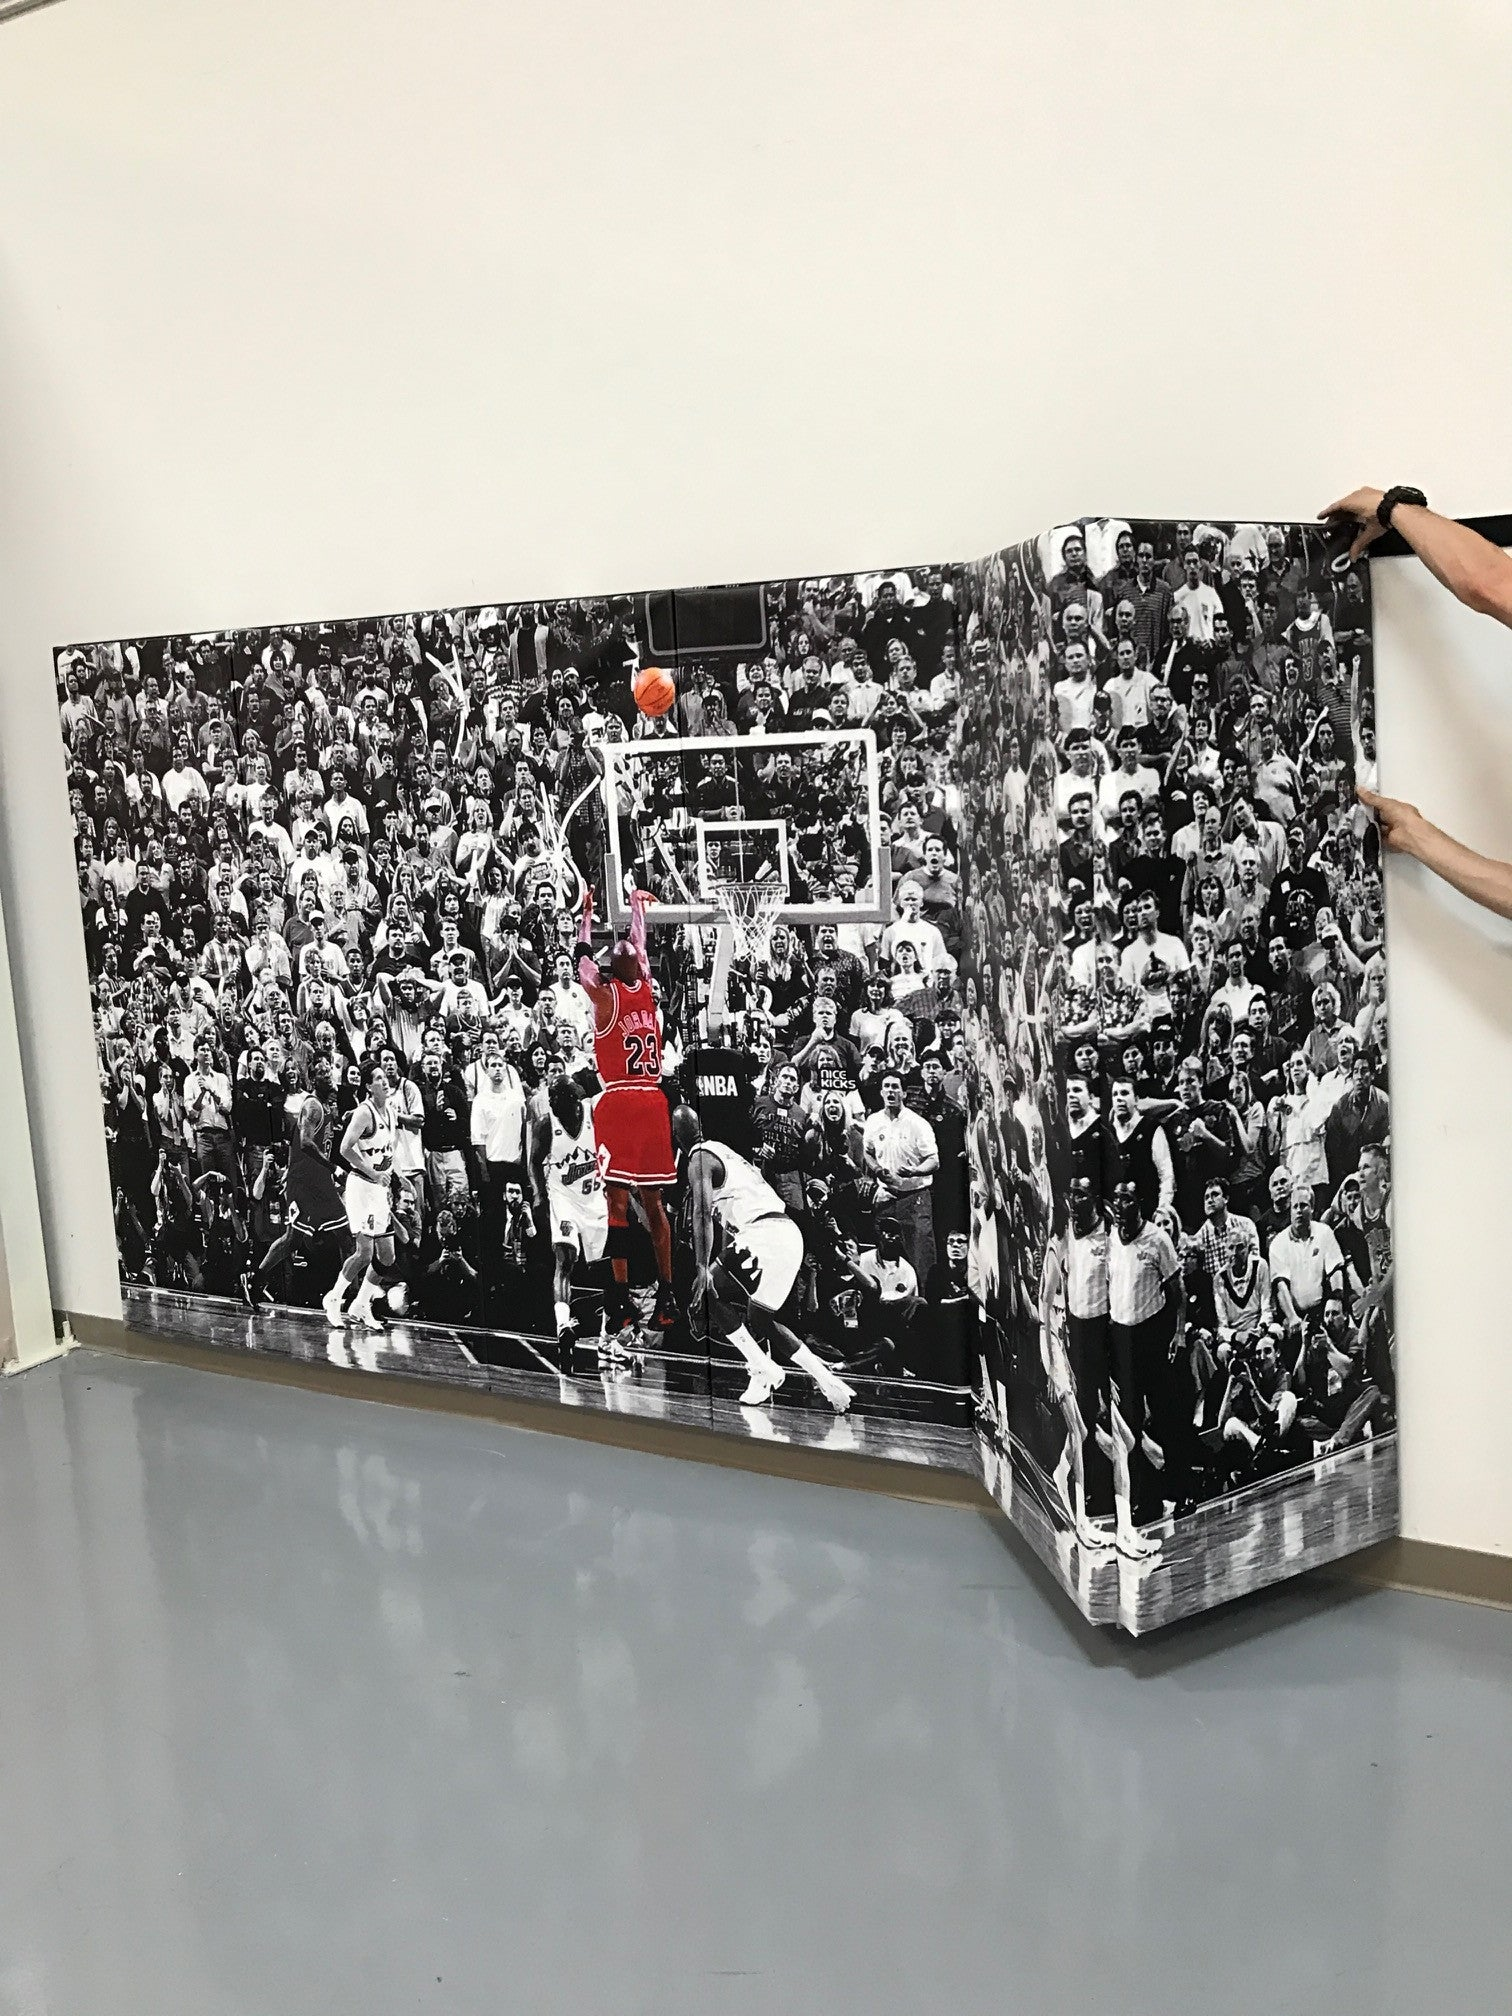 "Digitally Printed 6' x 12' x 2"" Removable Folding Gym Wall Pad With Velcro"